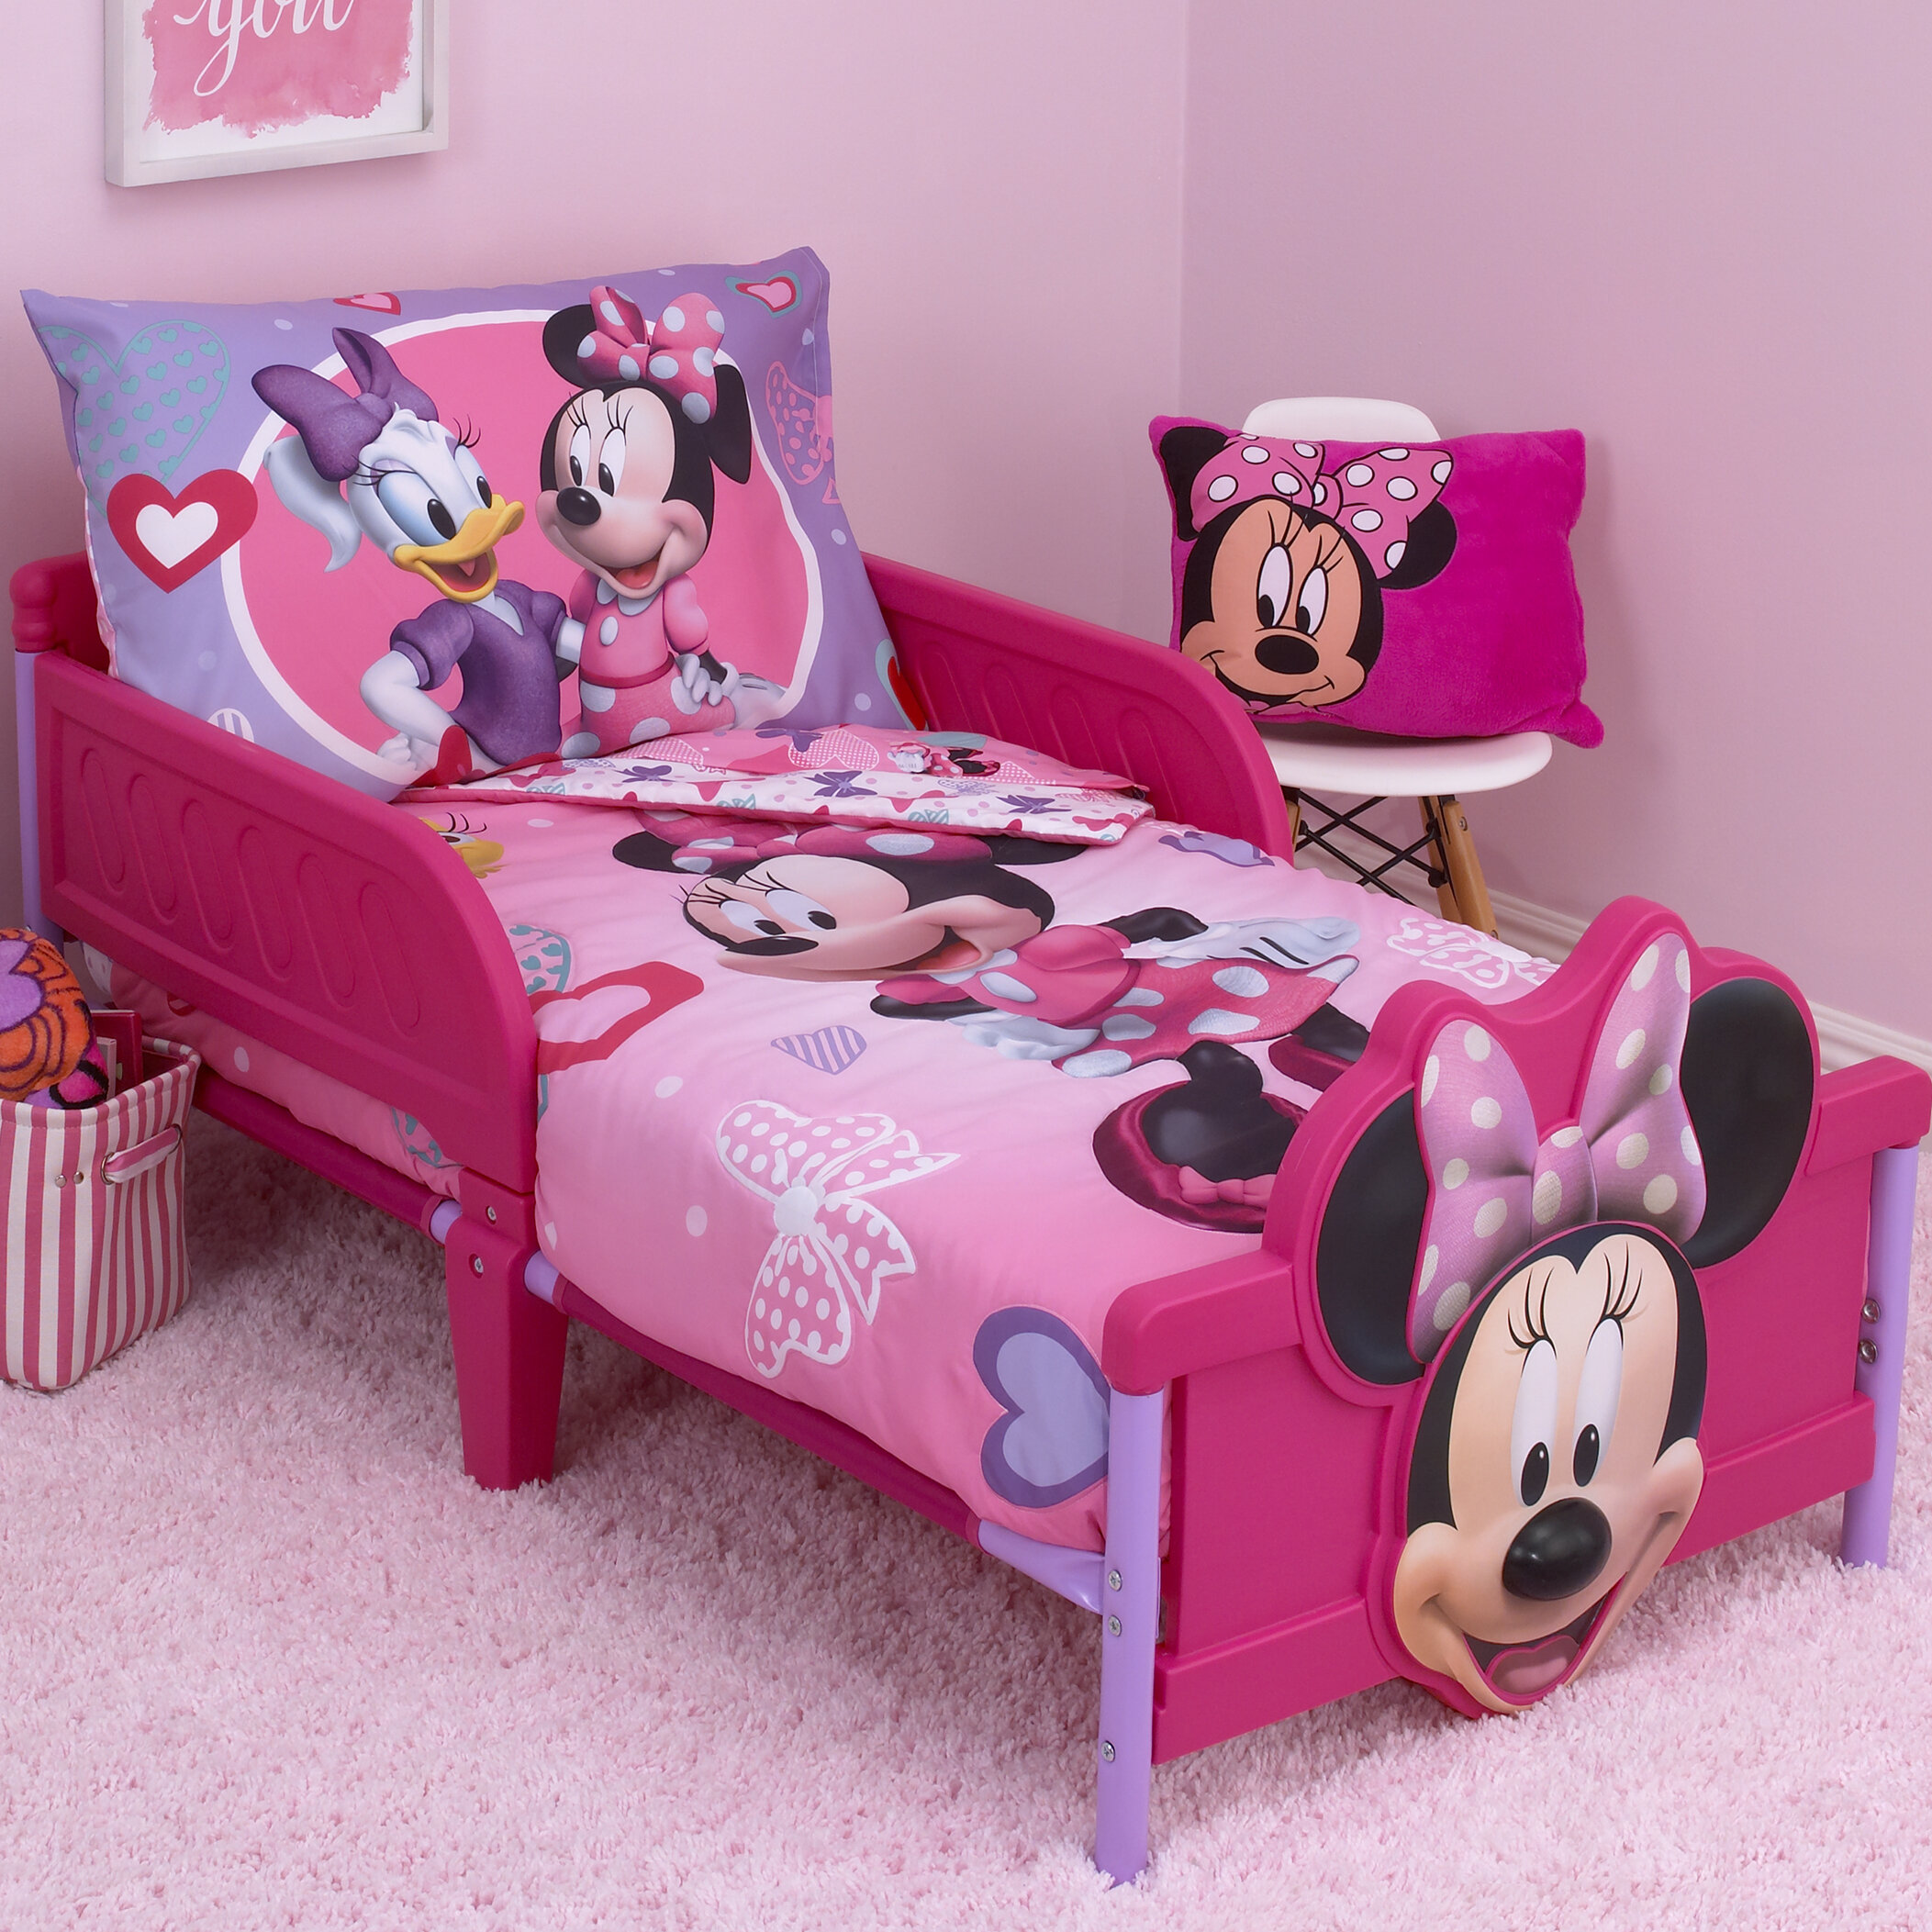 Disney Minnie Mouse Hearts and Bows 4 Piece Toddler Bedding Set ...